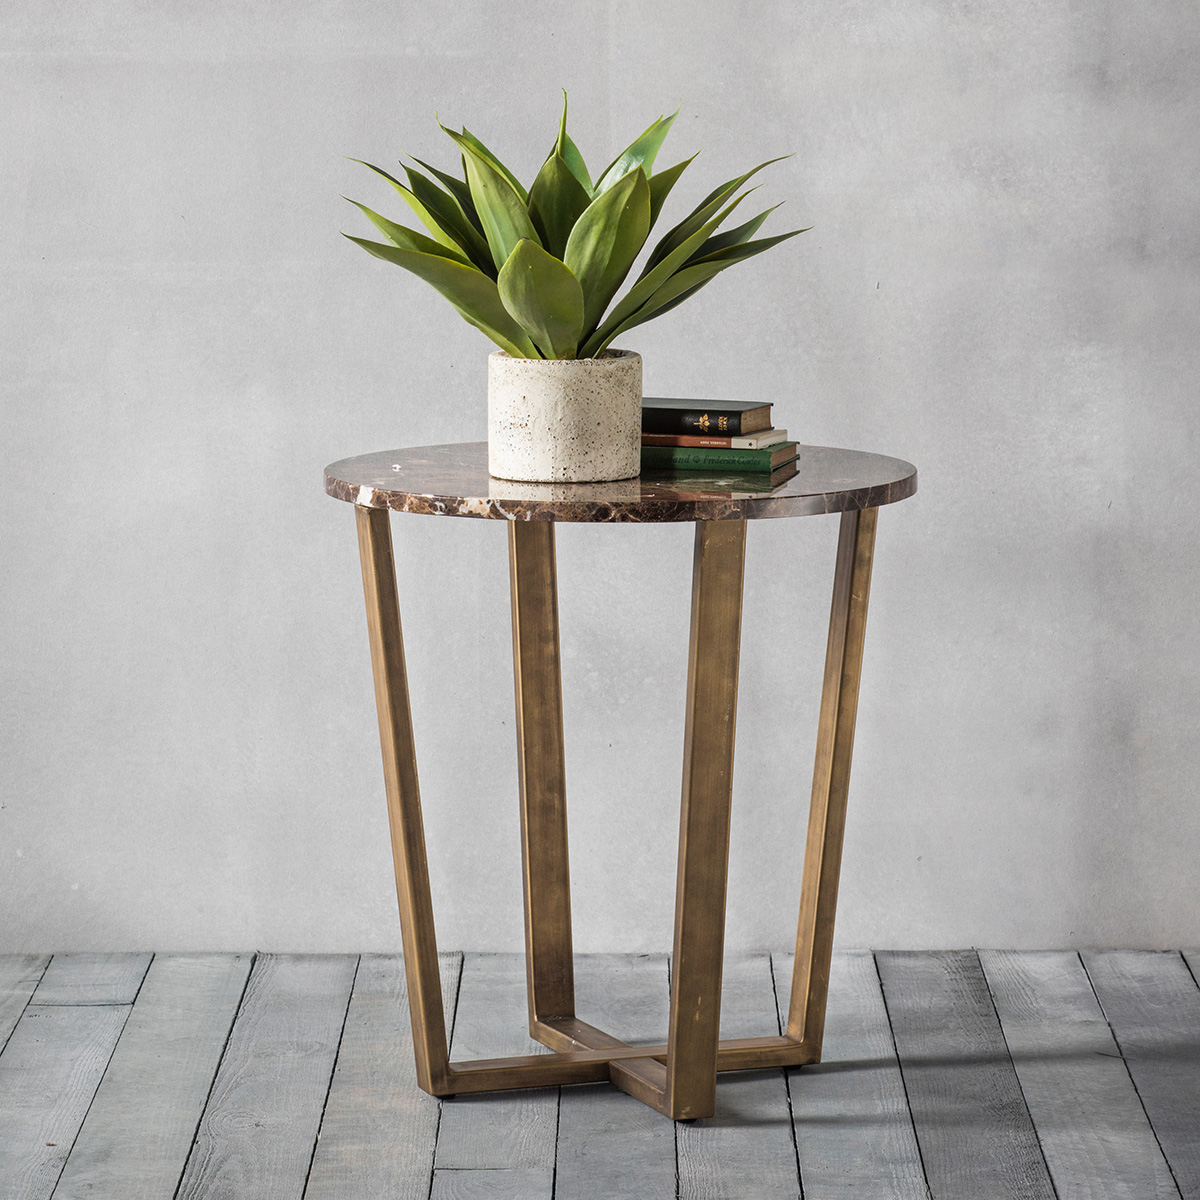 Palatine Marble Round Side Table at FADS.co.uk